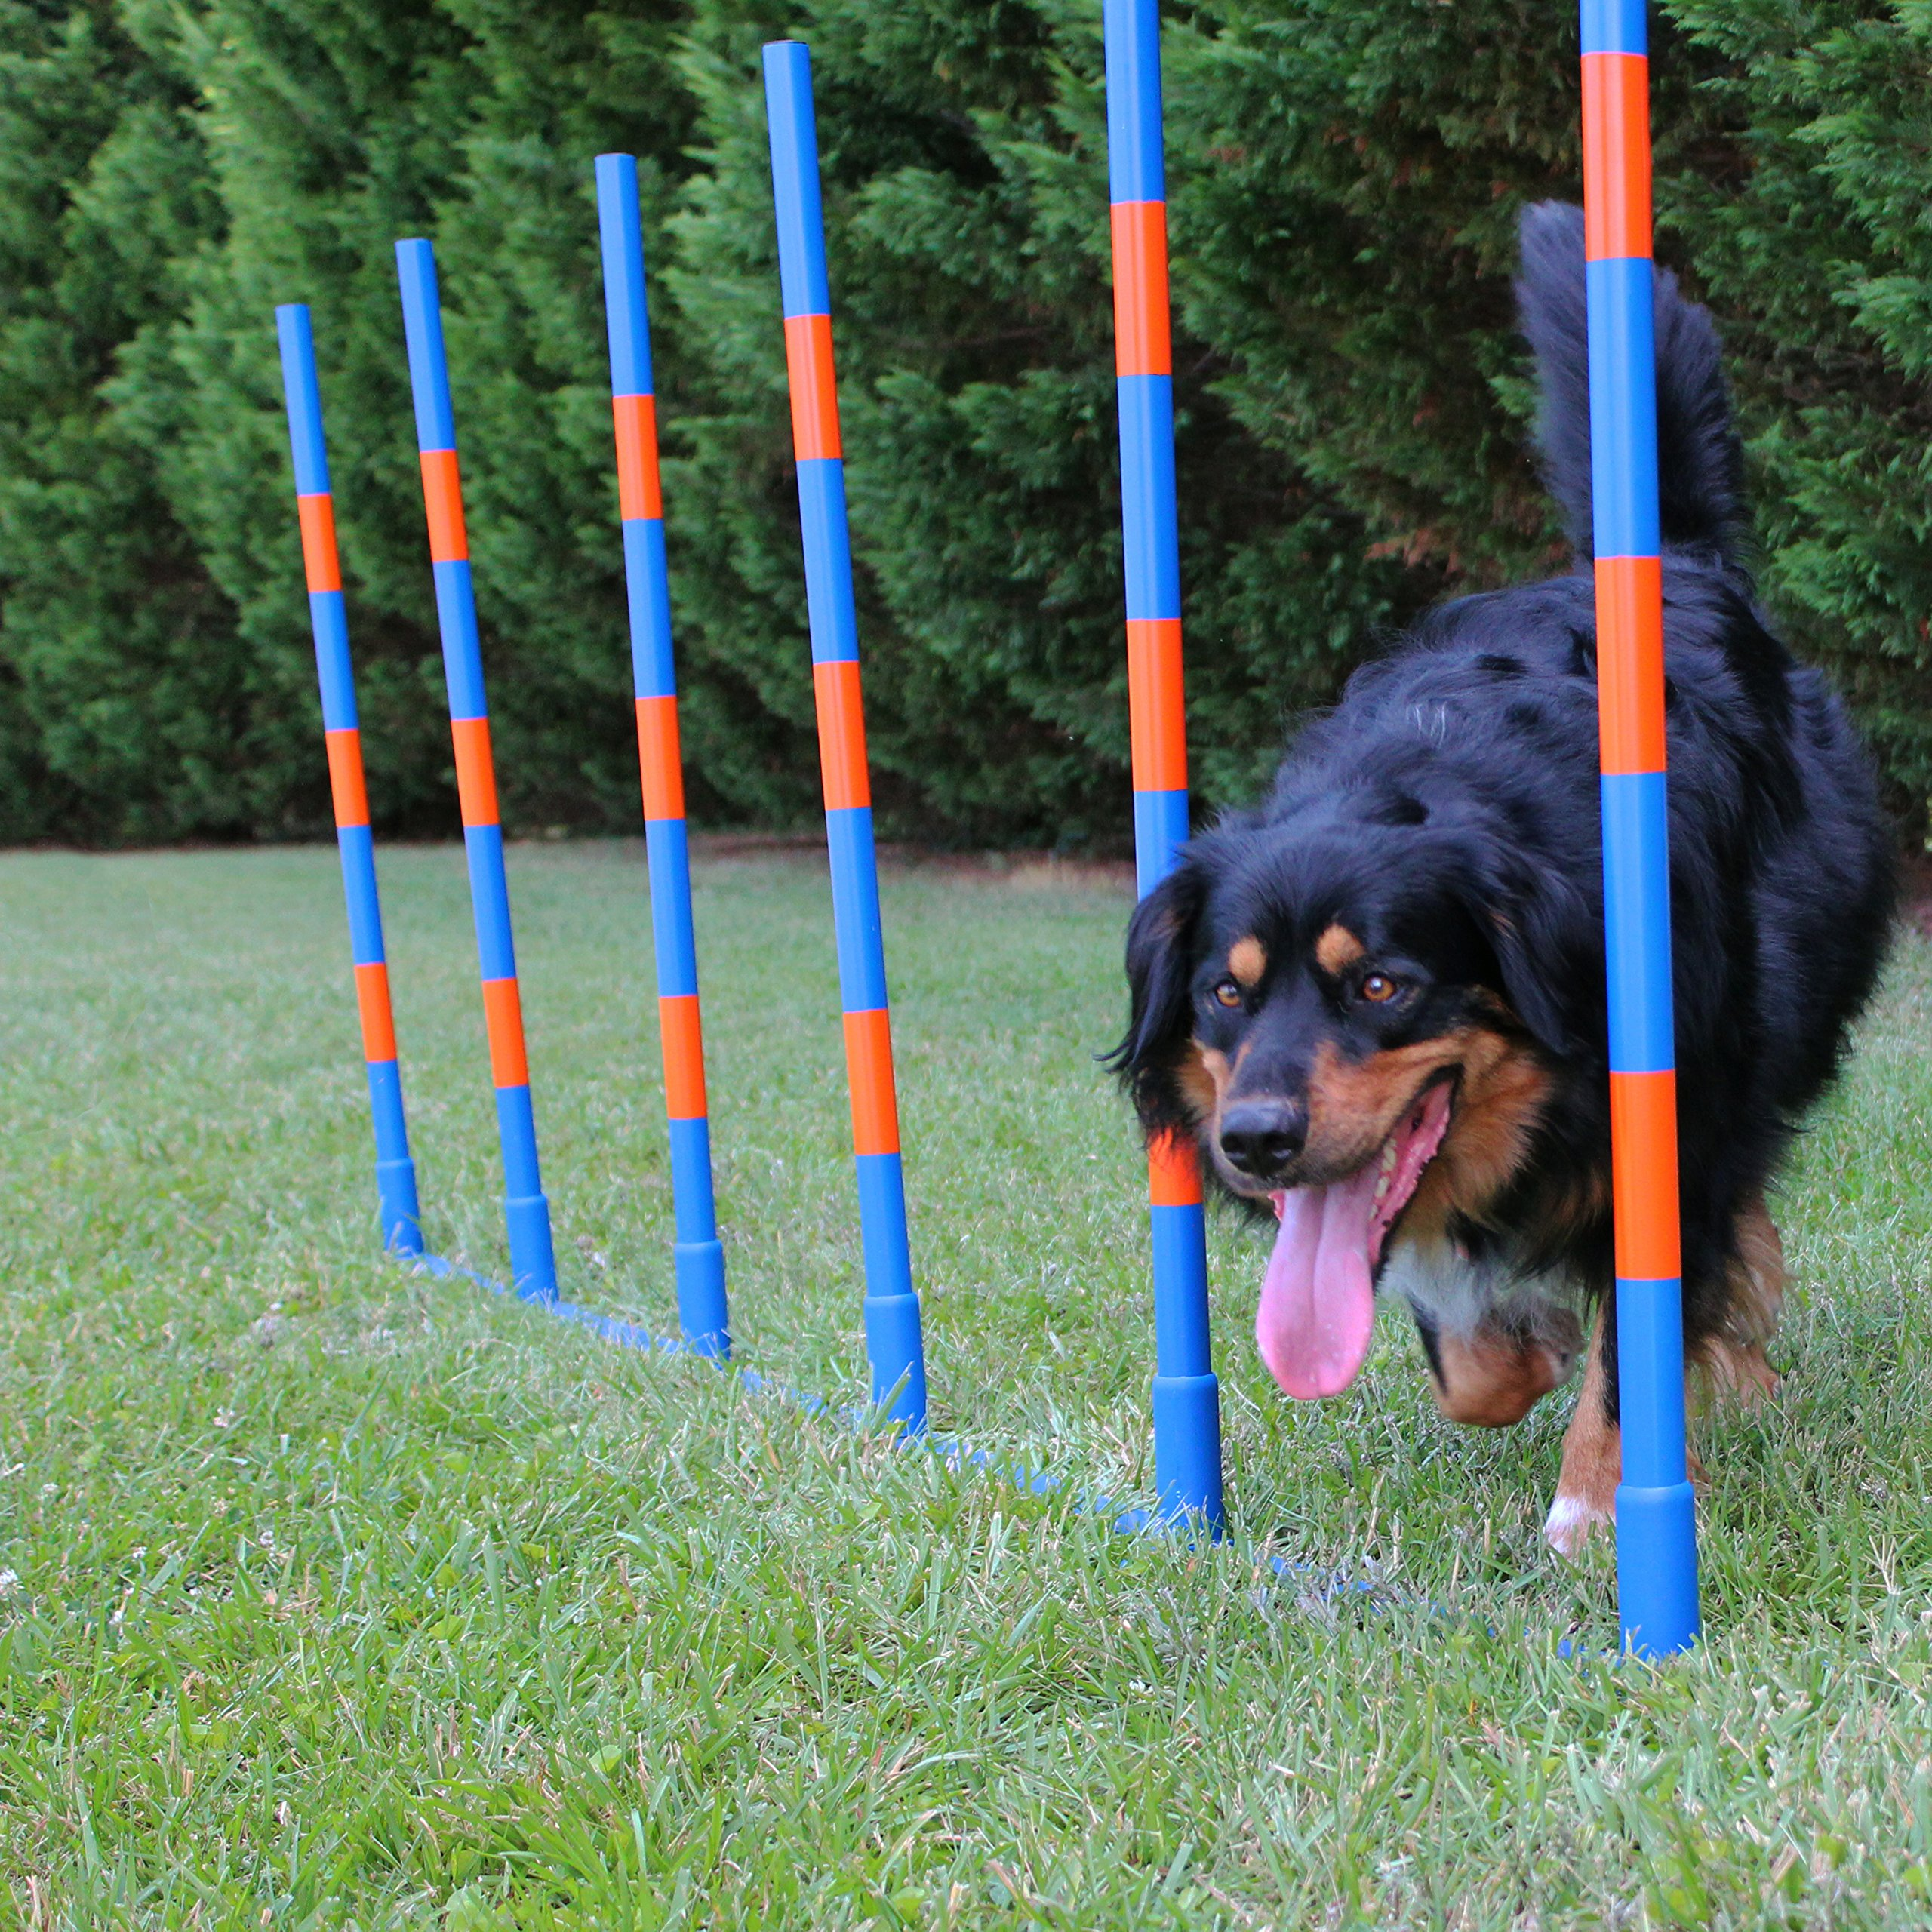 Lord Anson™ Dog Agility Weave Poles - Competition Grade Adjustable Agility Weave Pole Set - Dog Agility Equipment Set - 12 Weave Pole Set w/Carrying Case